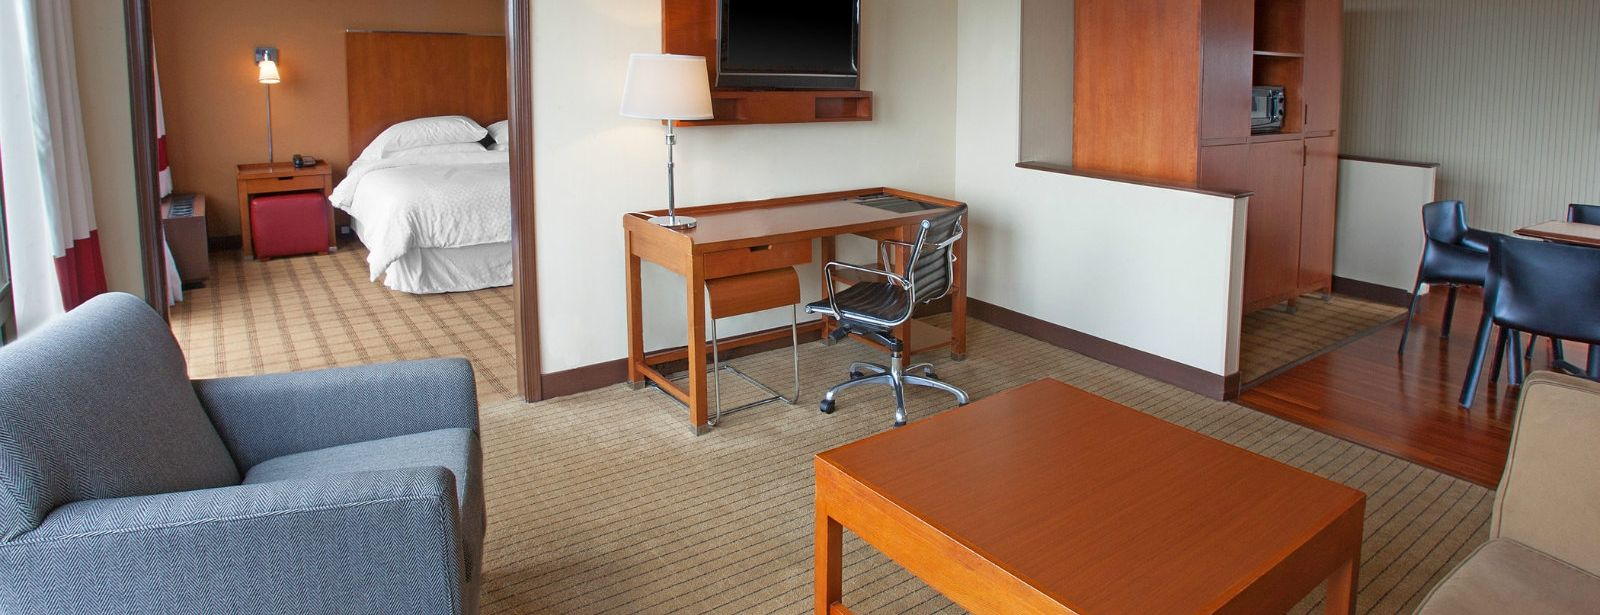 Philadelphia Accommodations - Junior Suite